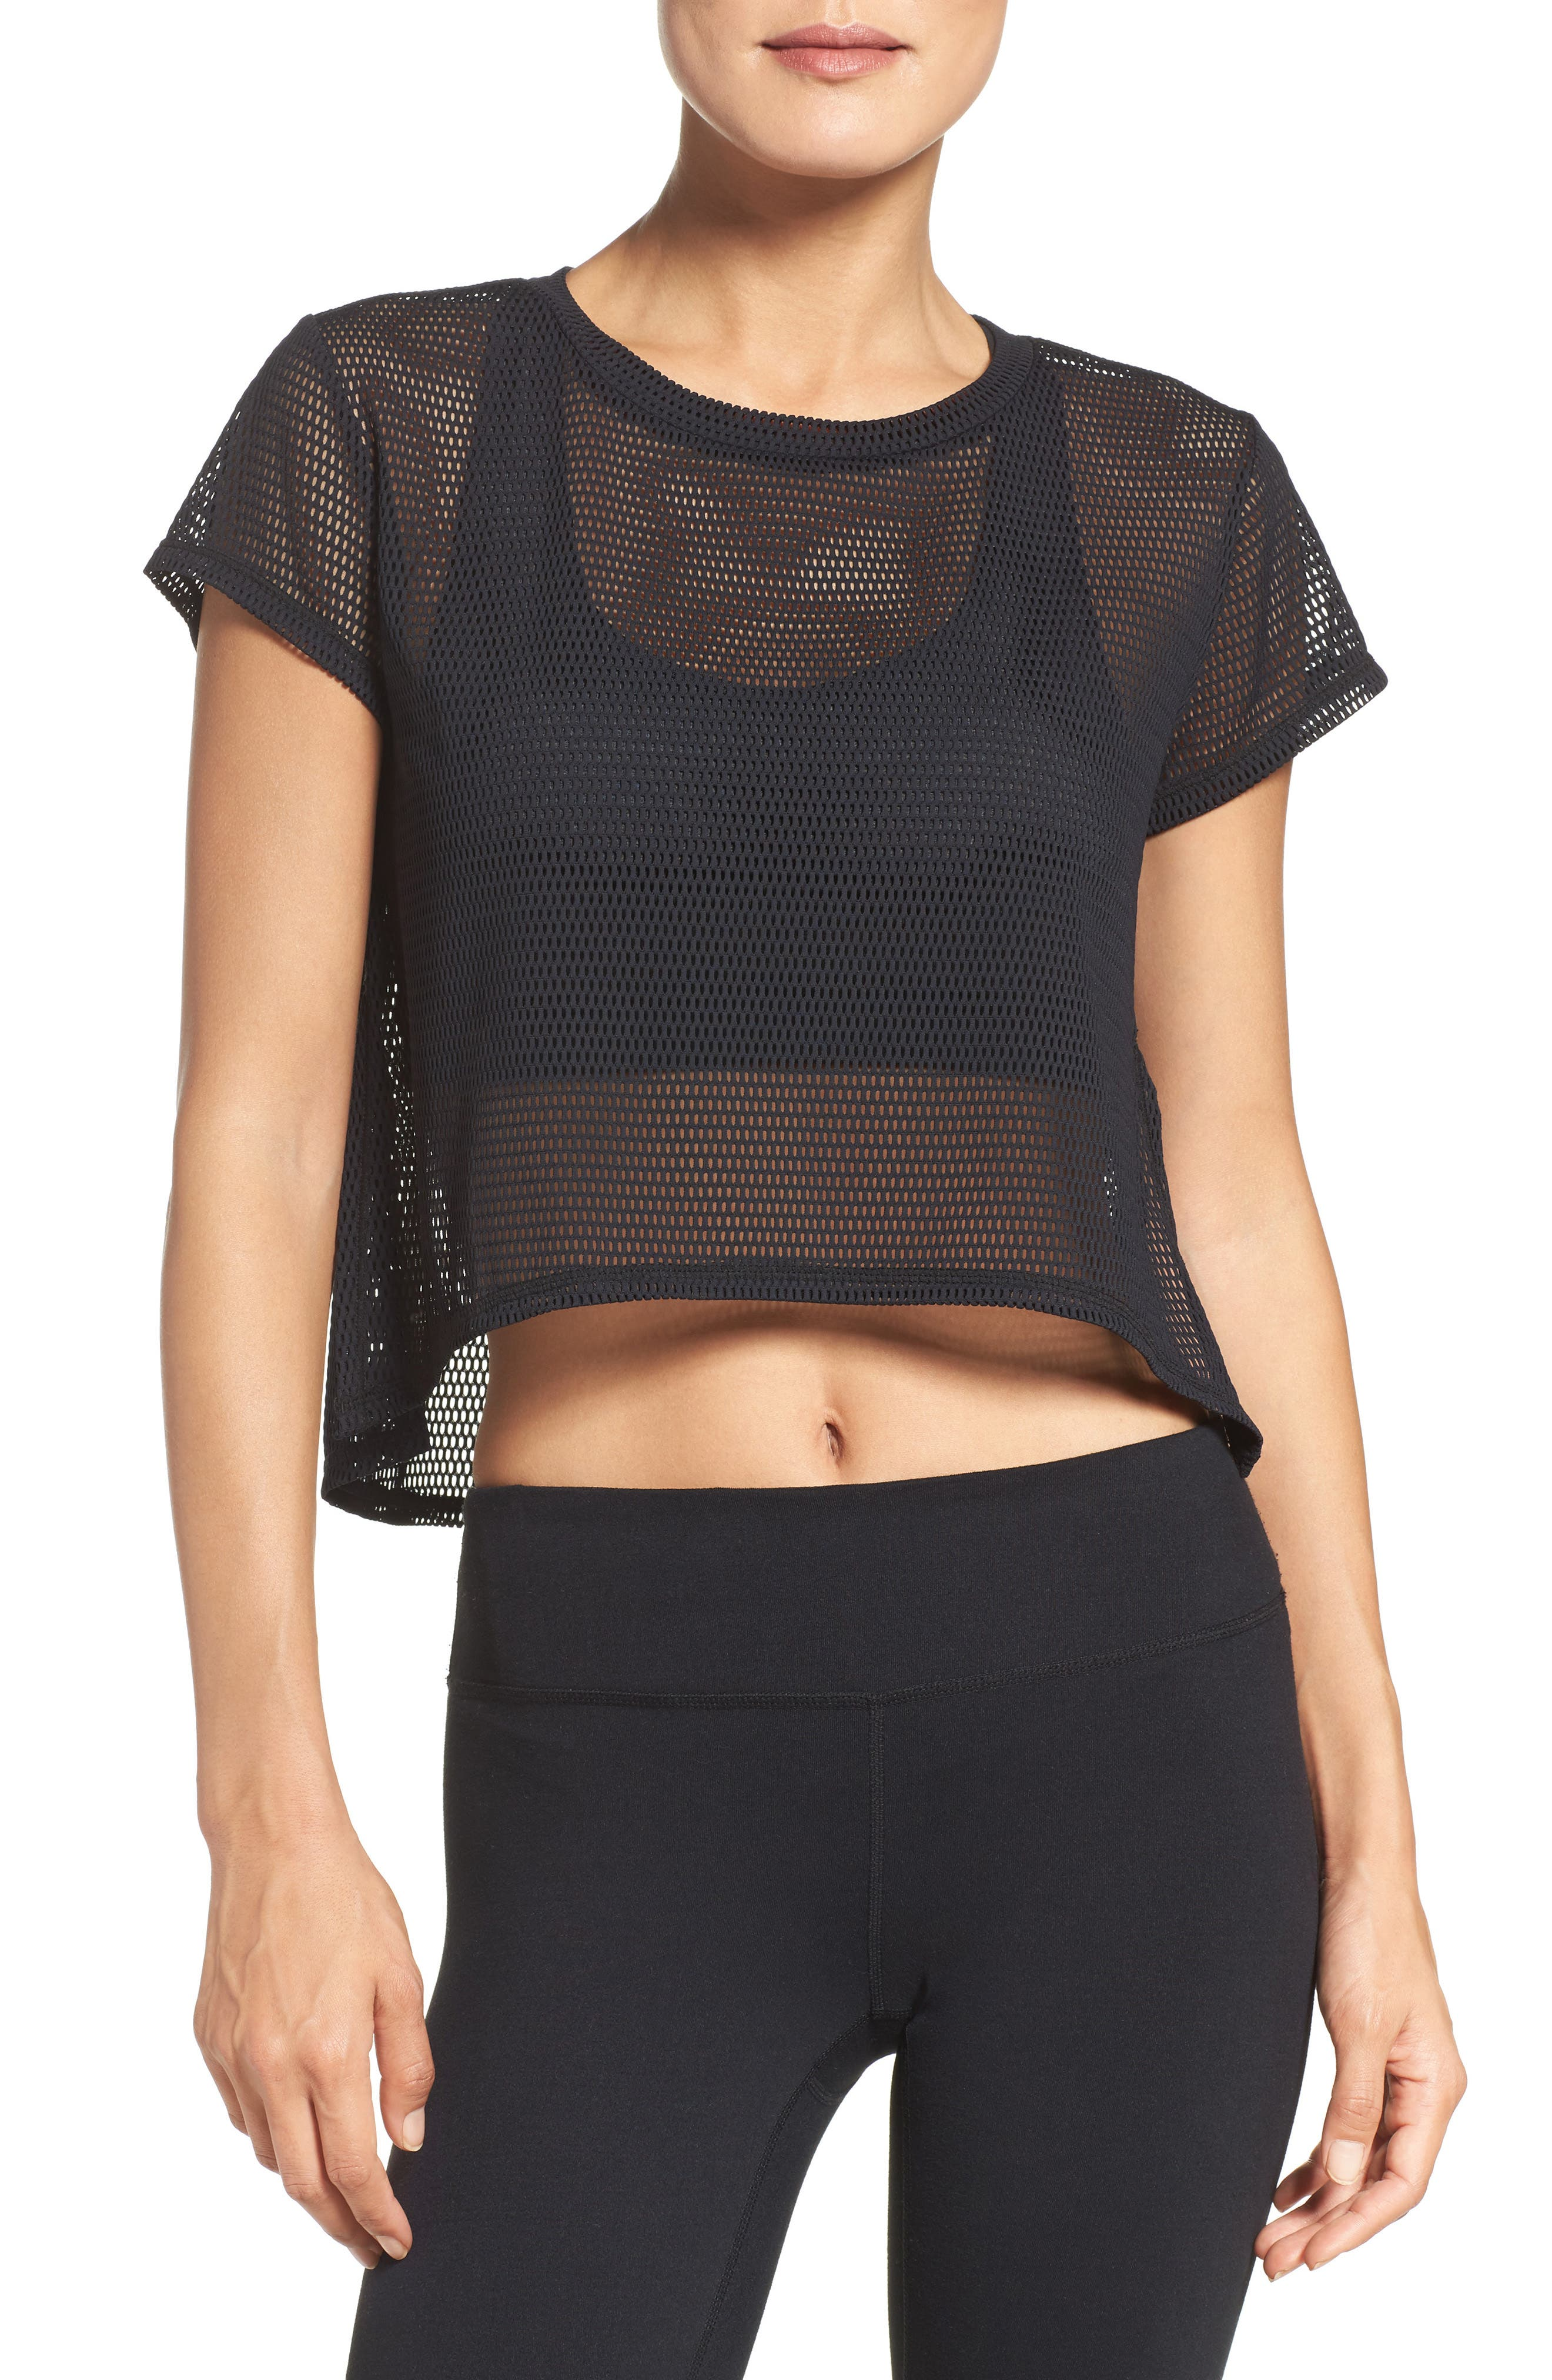 ZELLA Meshin' Around Crop Tee, Main, color, 001